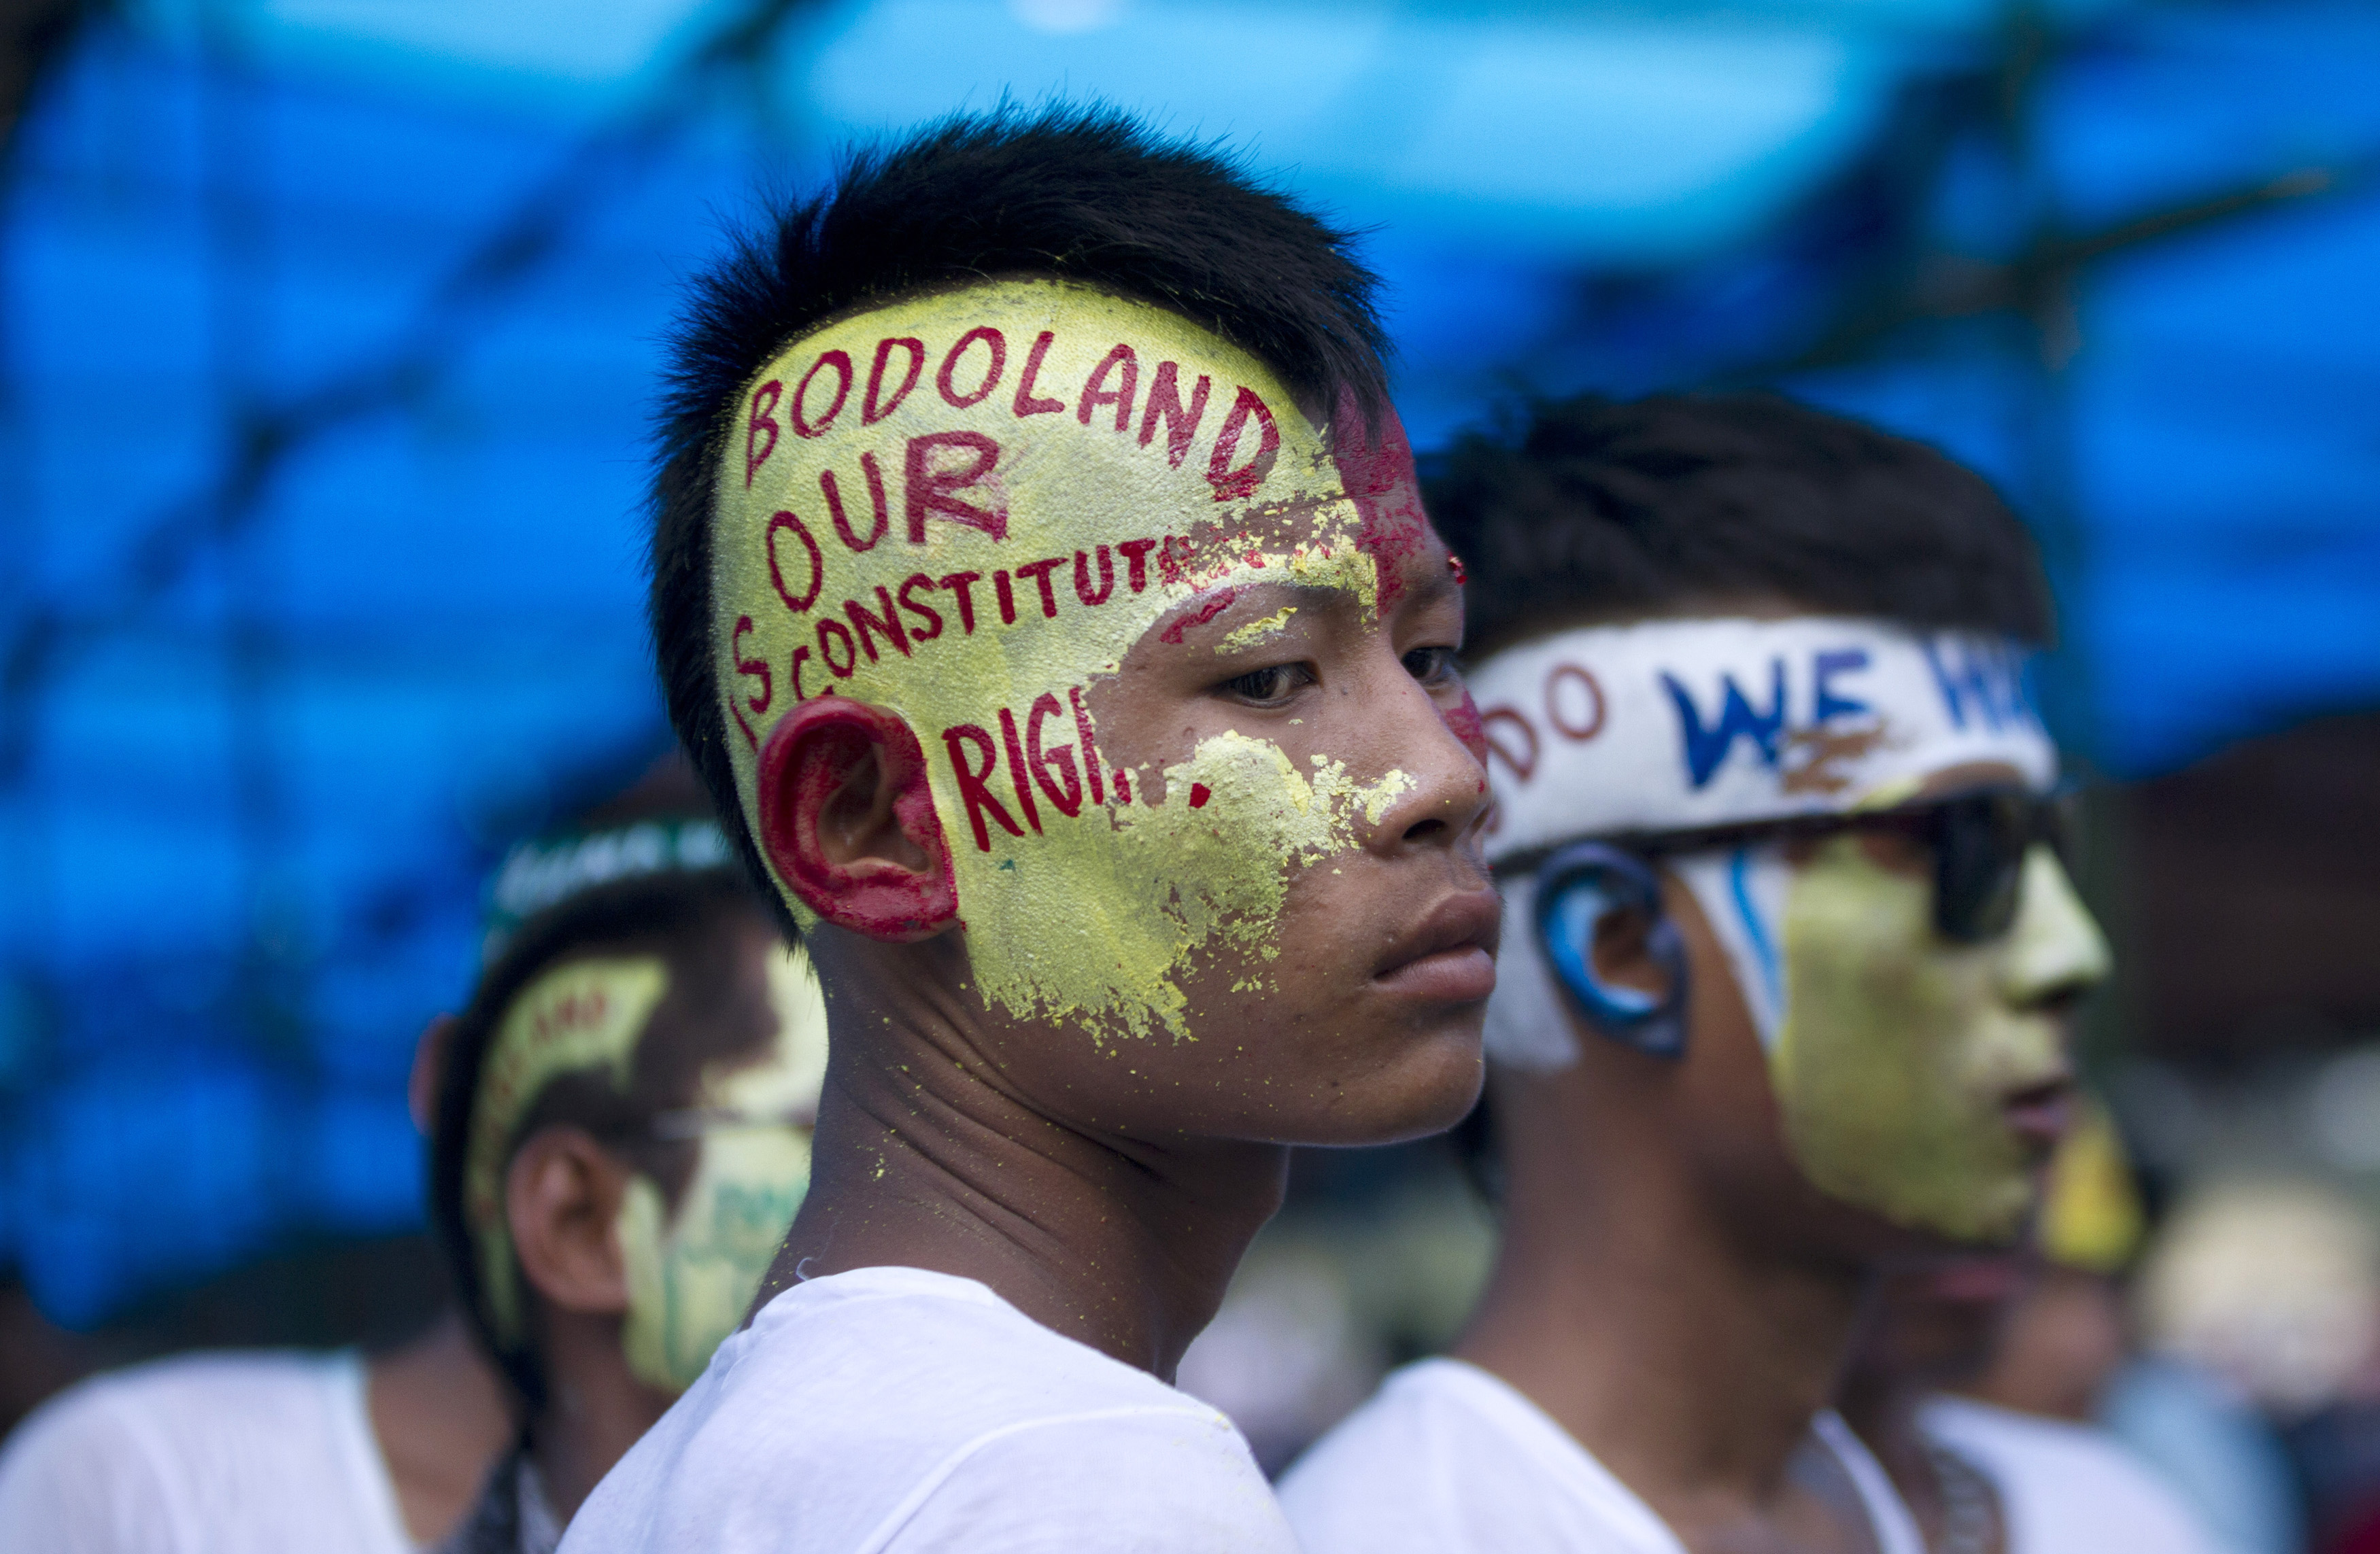 Supporters of Bodoland People's Front (BPF), a local political party, with their faces painted attend a rally at Kokrajhar in the northeastern Indian state of Assam August 4, 2013. Thousands of the supporters on Sunday held a rally to protest against the Indian government in their demand for a separate Bodoland state carved out of Assam, BPF supporters said. REUTERS/Stringer (INDIA - Tags: POLITICS CIVIL UNREST) - RTX12A30